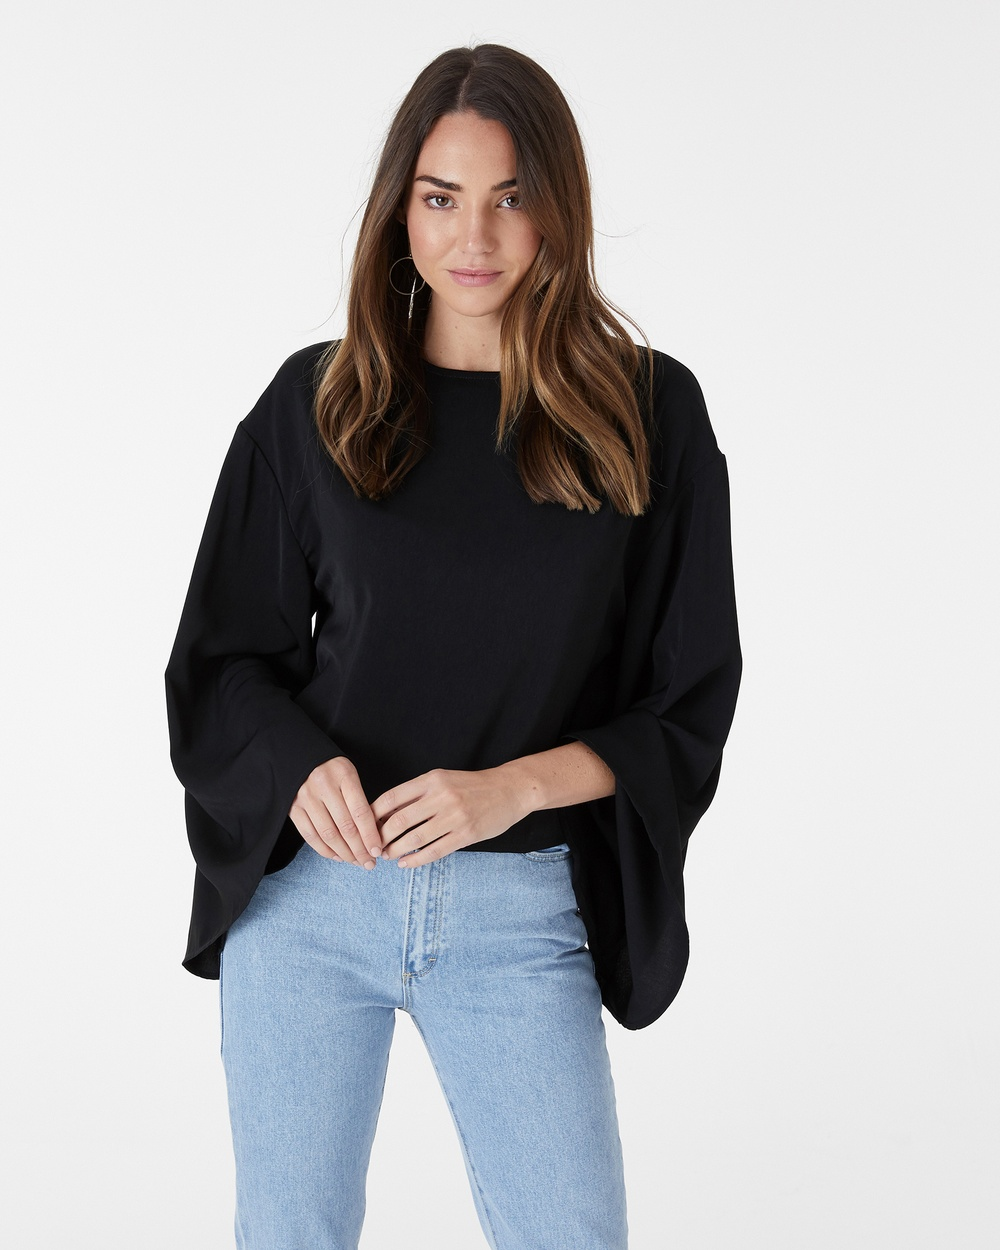 Everly Collective Walk On By Top Tops Black Walk On By Top